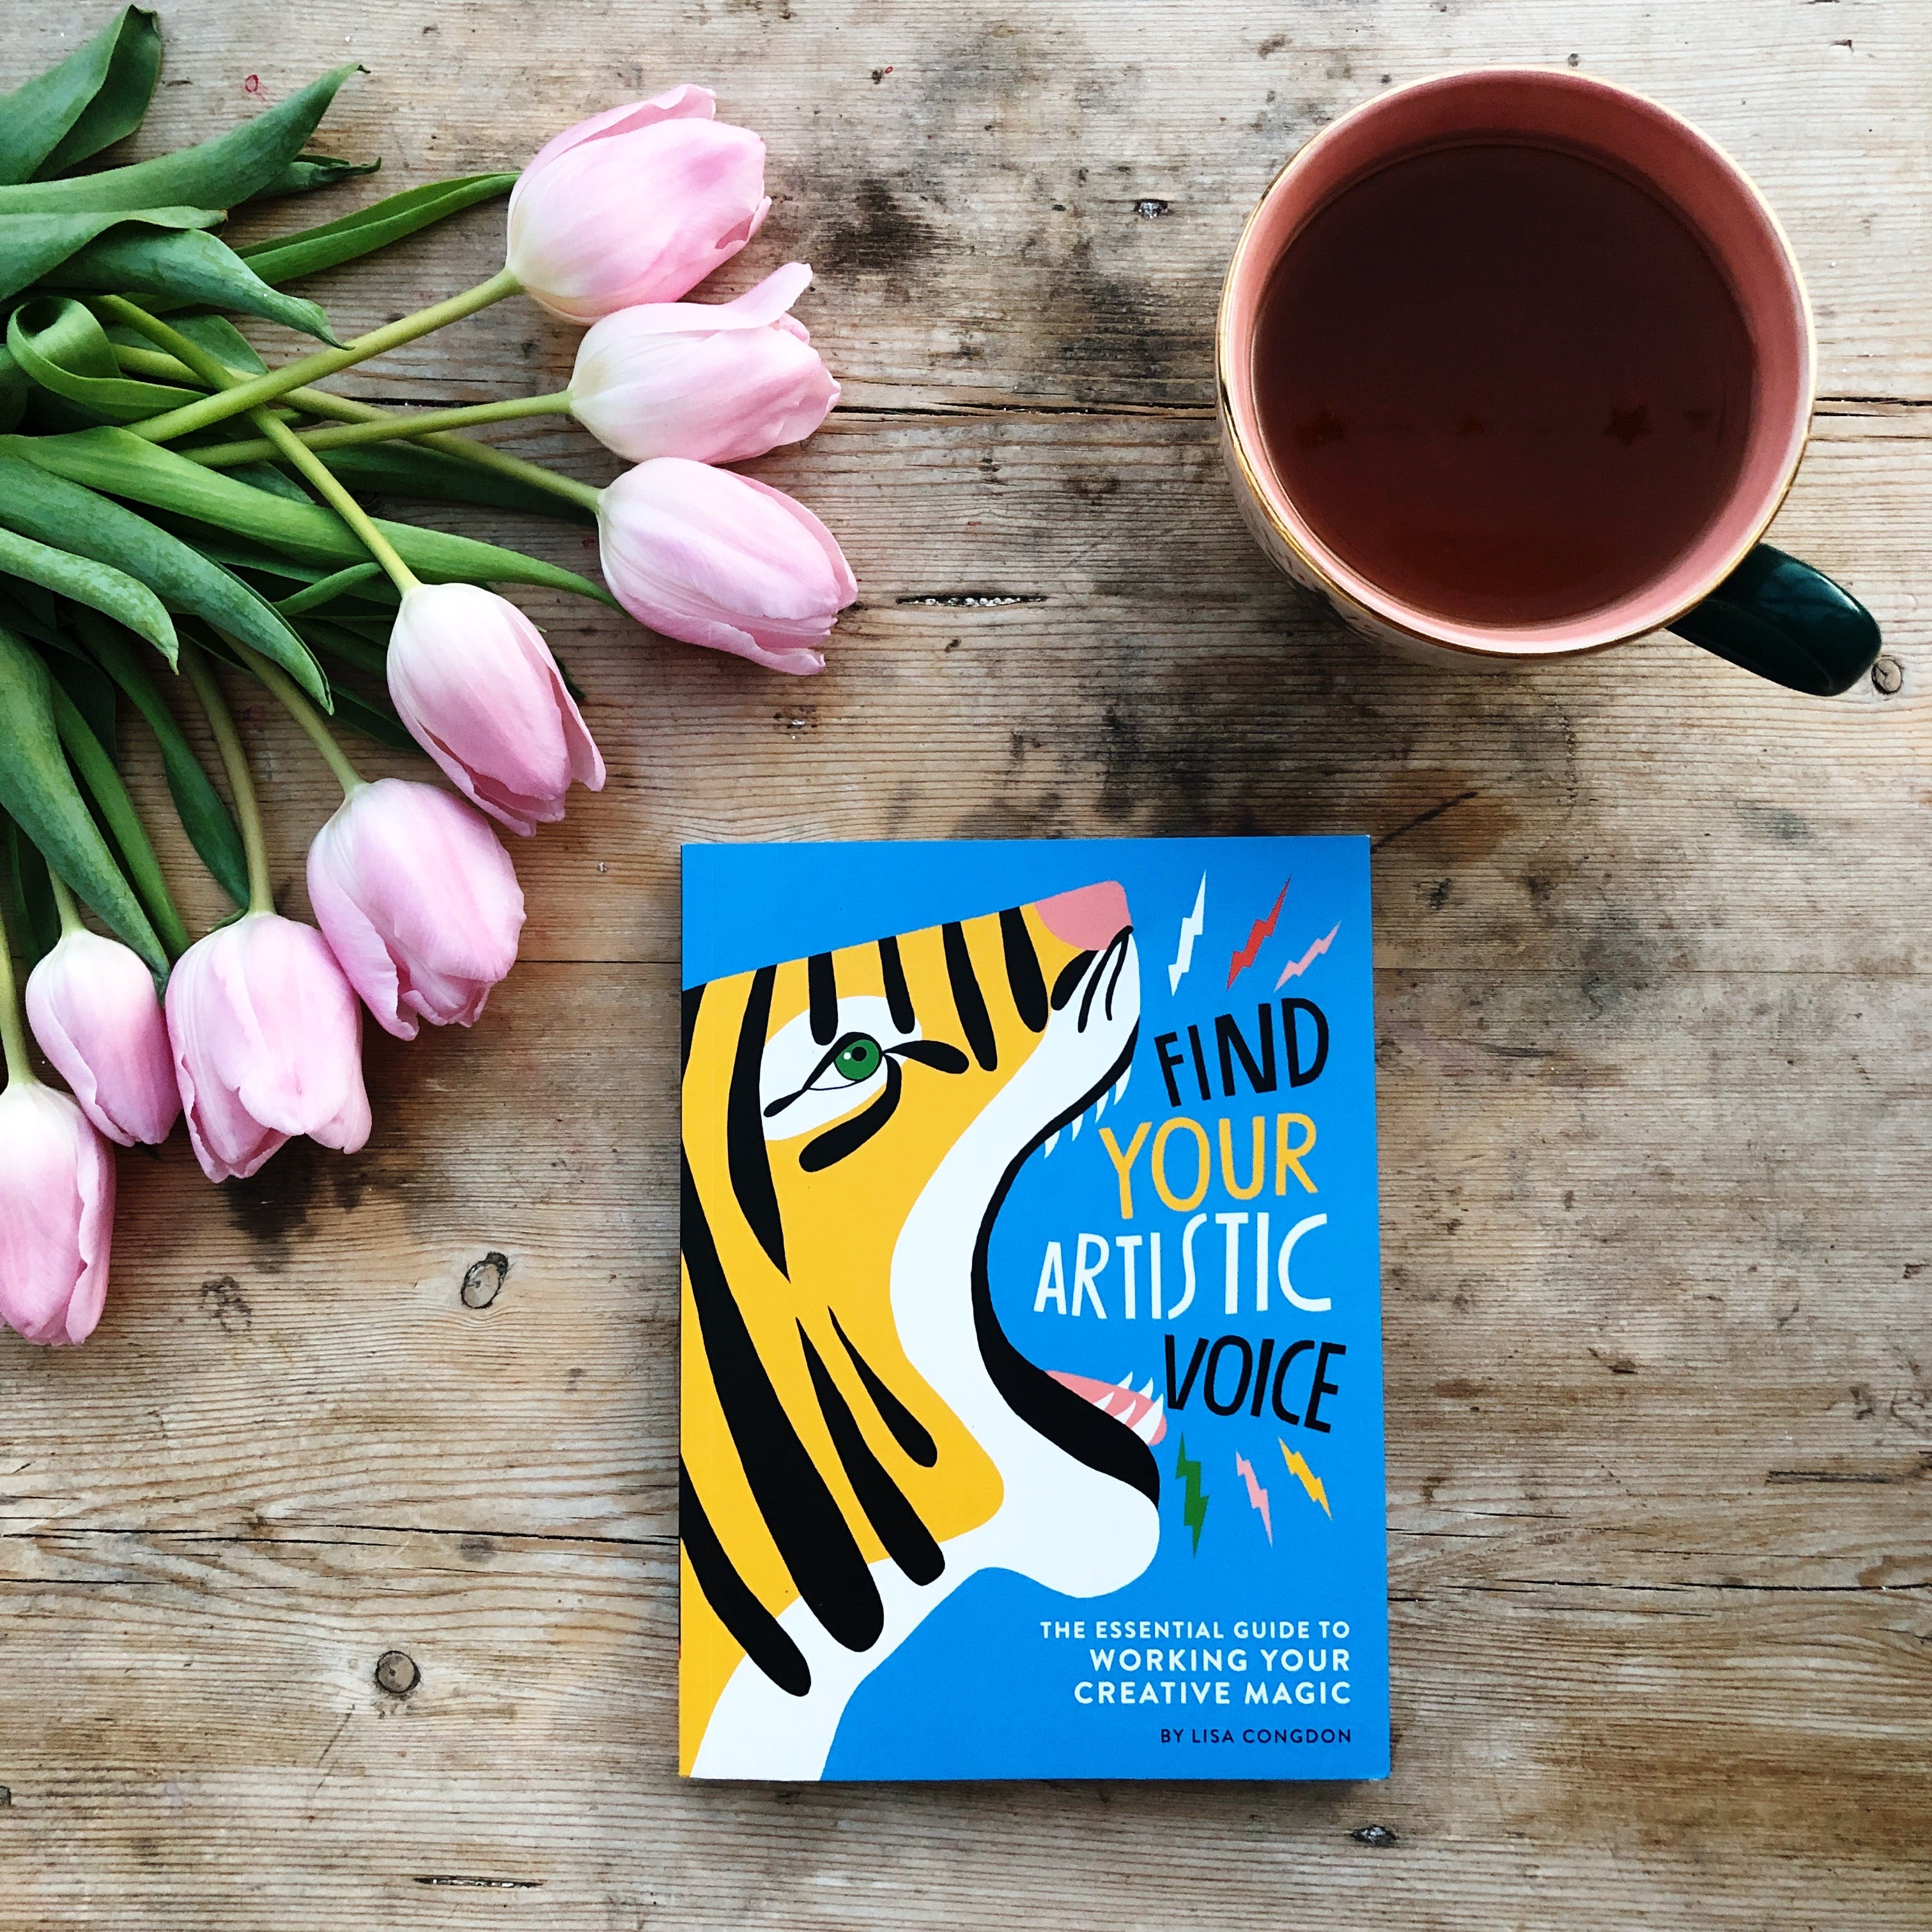 A wonderful new book from Lisa Congdon